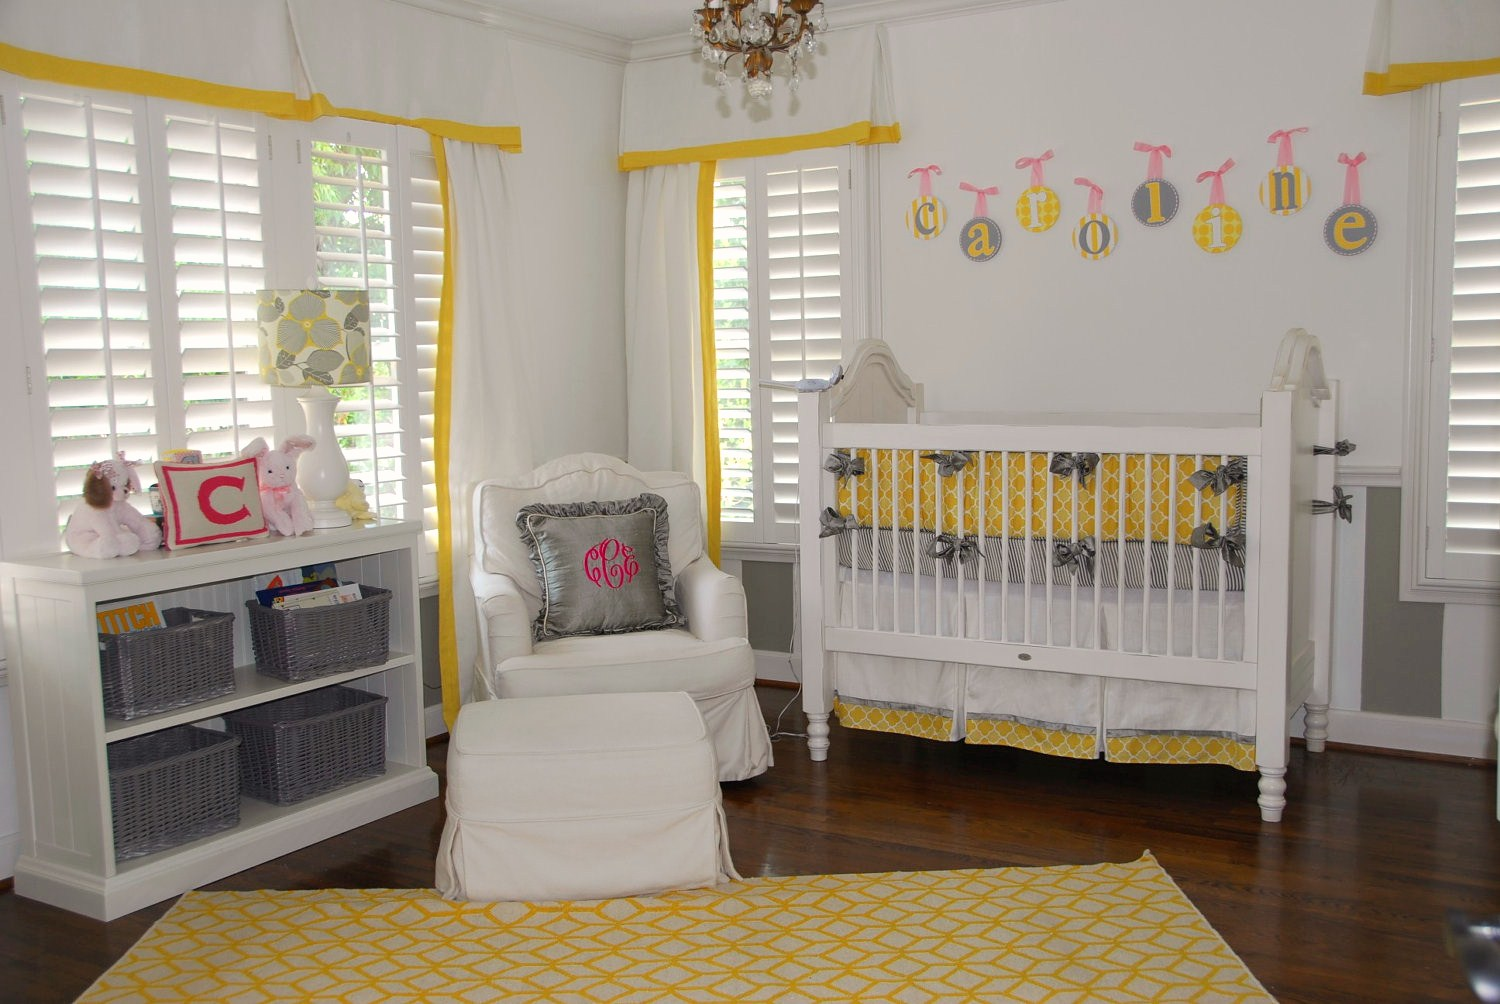 The hallam family baby room ideas - Grey and yellow room ...